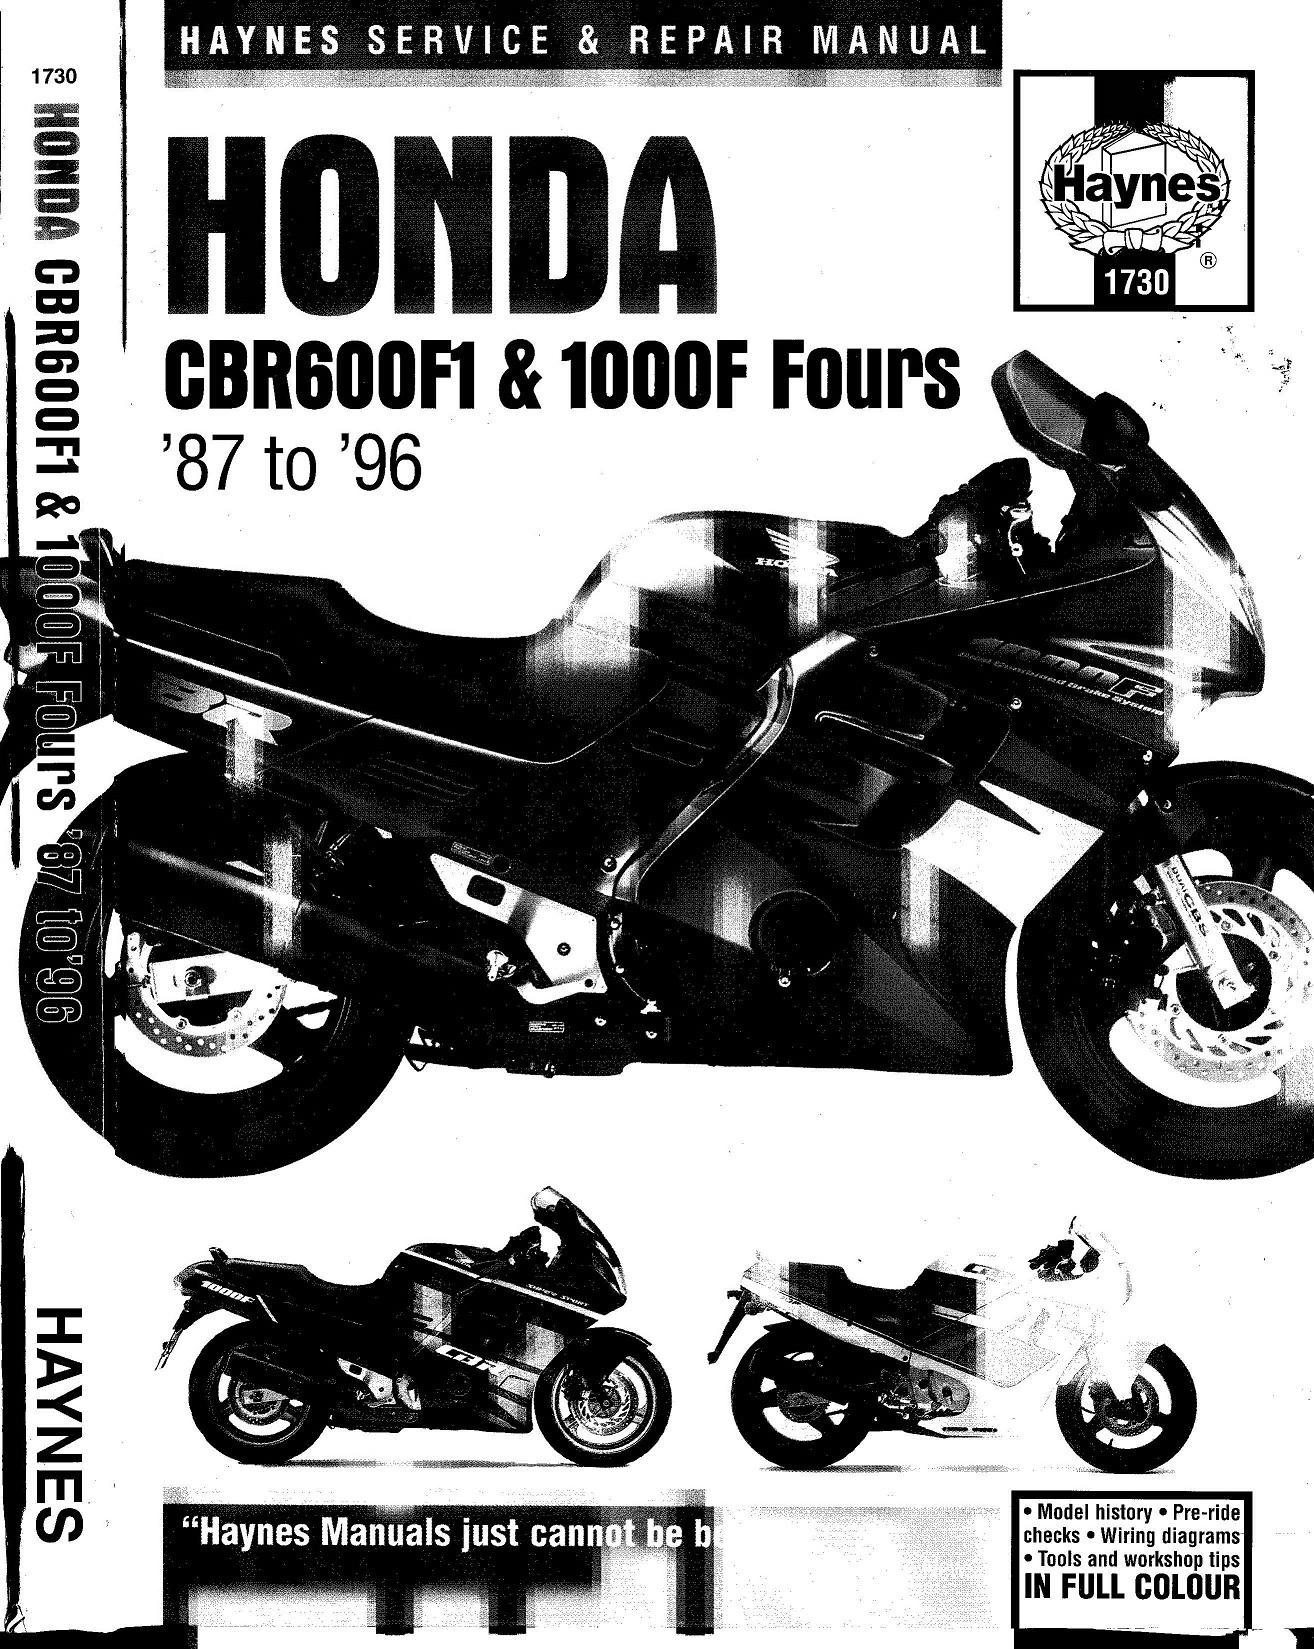 Workshop manual for Honda CBR600 F1 (1987-1996)